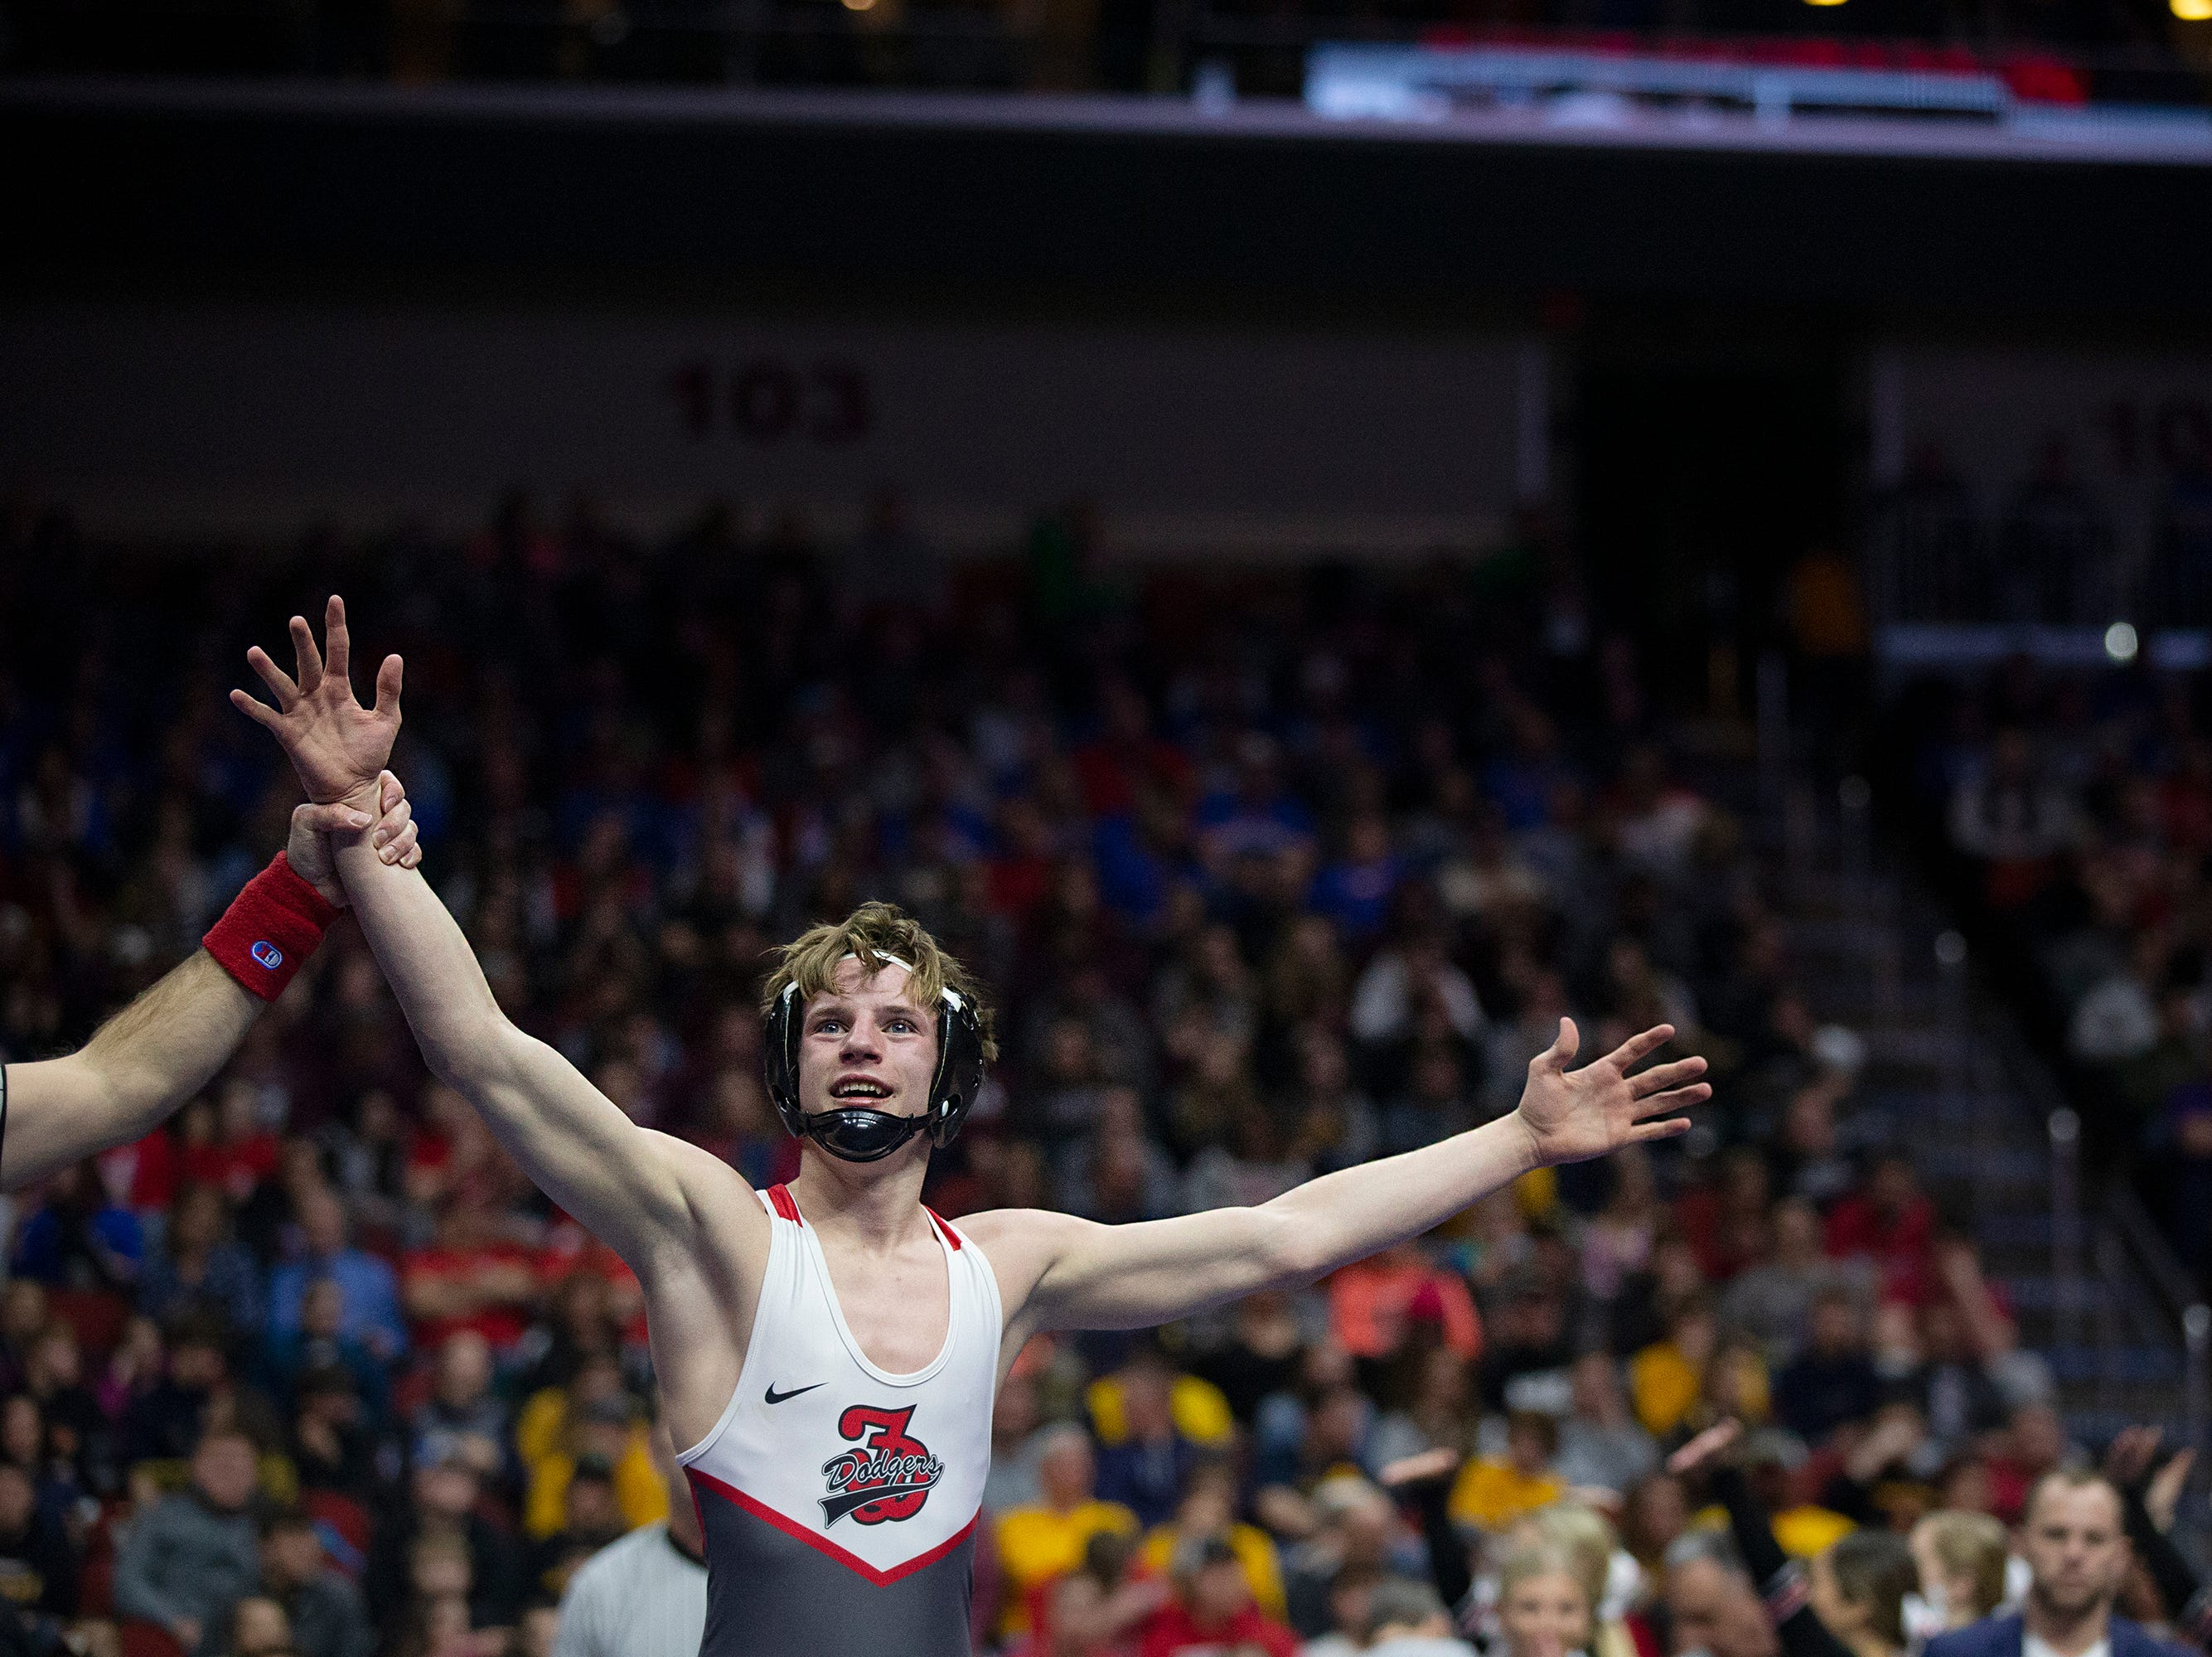 Fort Dodge's Carson Taylor wins the 120 pound Class 3A championship match against Iowa City West's Hunter Garvin during the Iowa high school state wrestling tournament on Saturday, Feb. 16, 2019, in Wells Fargo Arena.